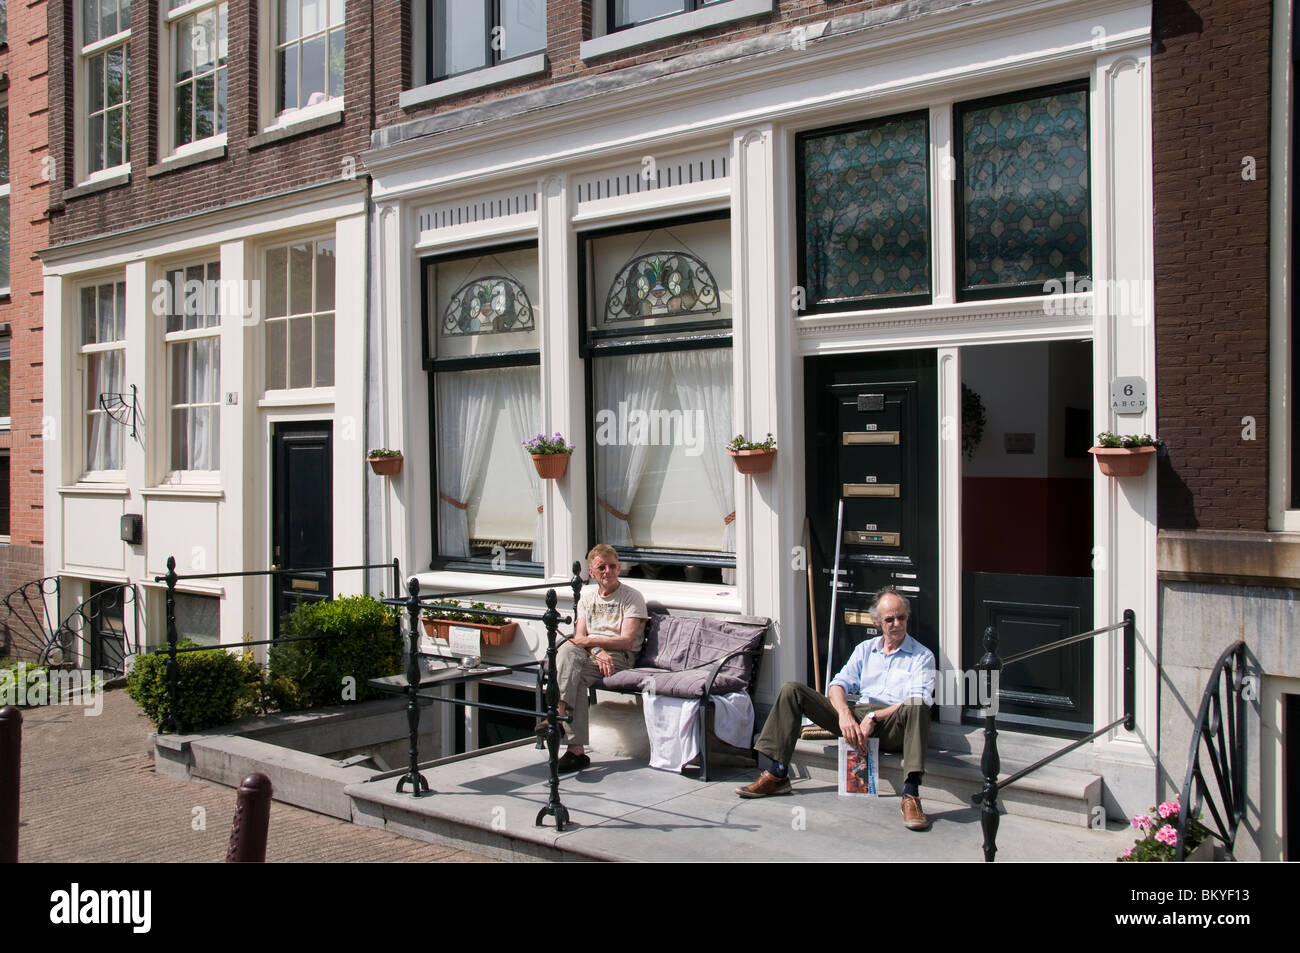 Amsterdam Holland Jordaan  Prinsengracht canal house two old men in the sun - Stock Image